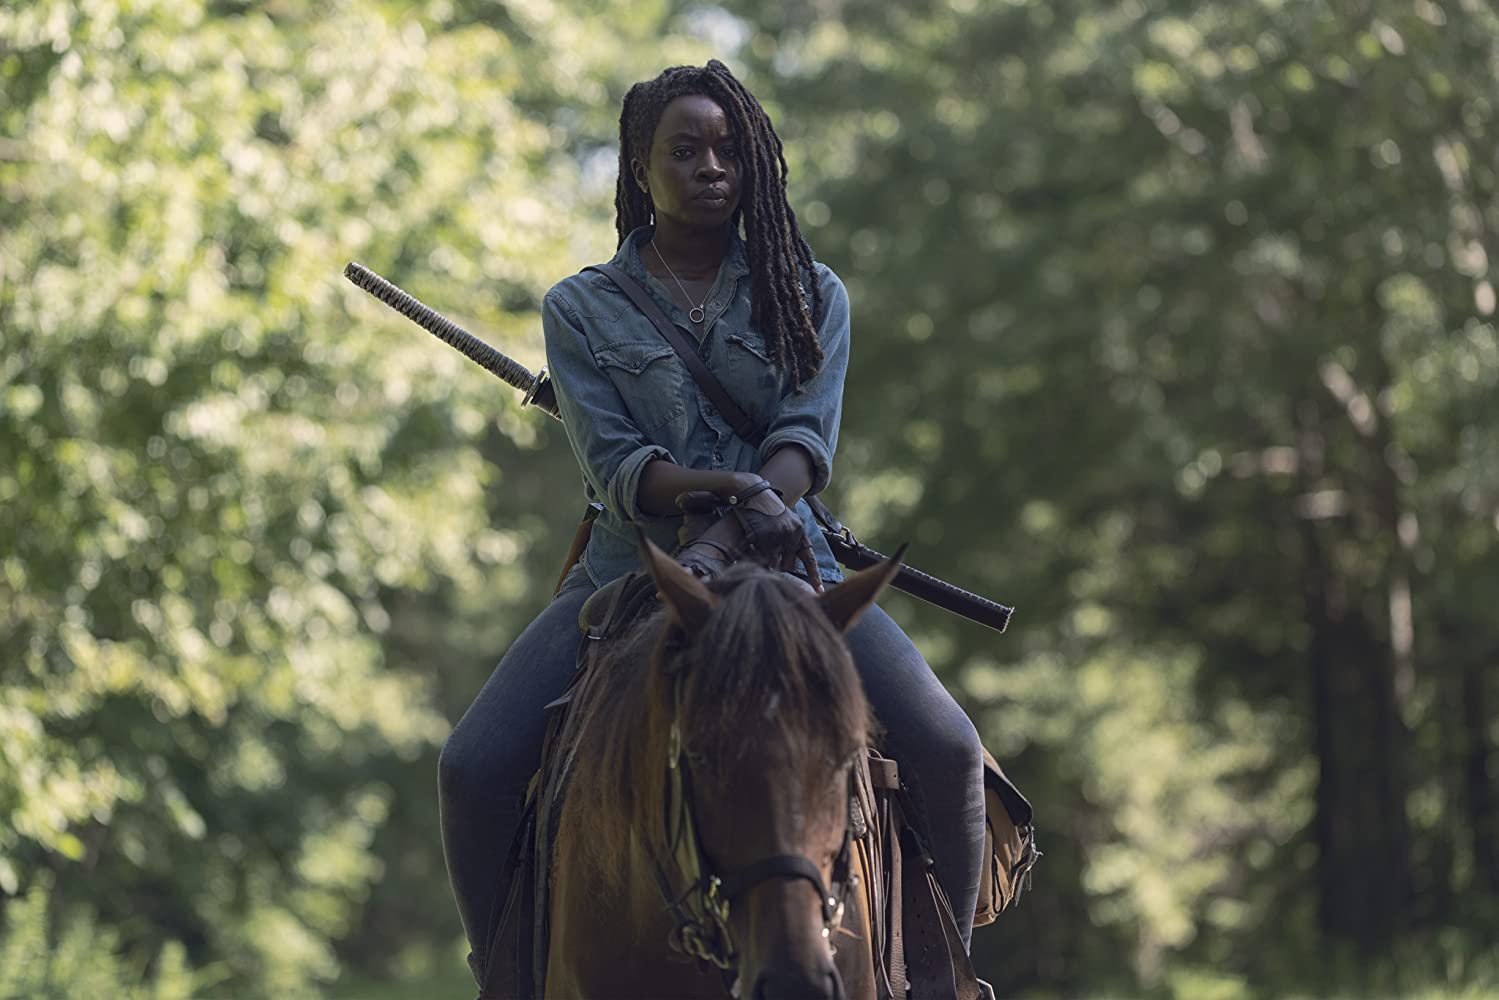 Danai Gurira in The Walking Dead (2010)